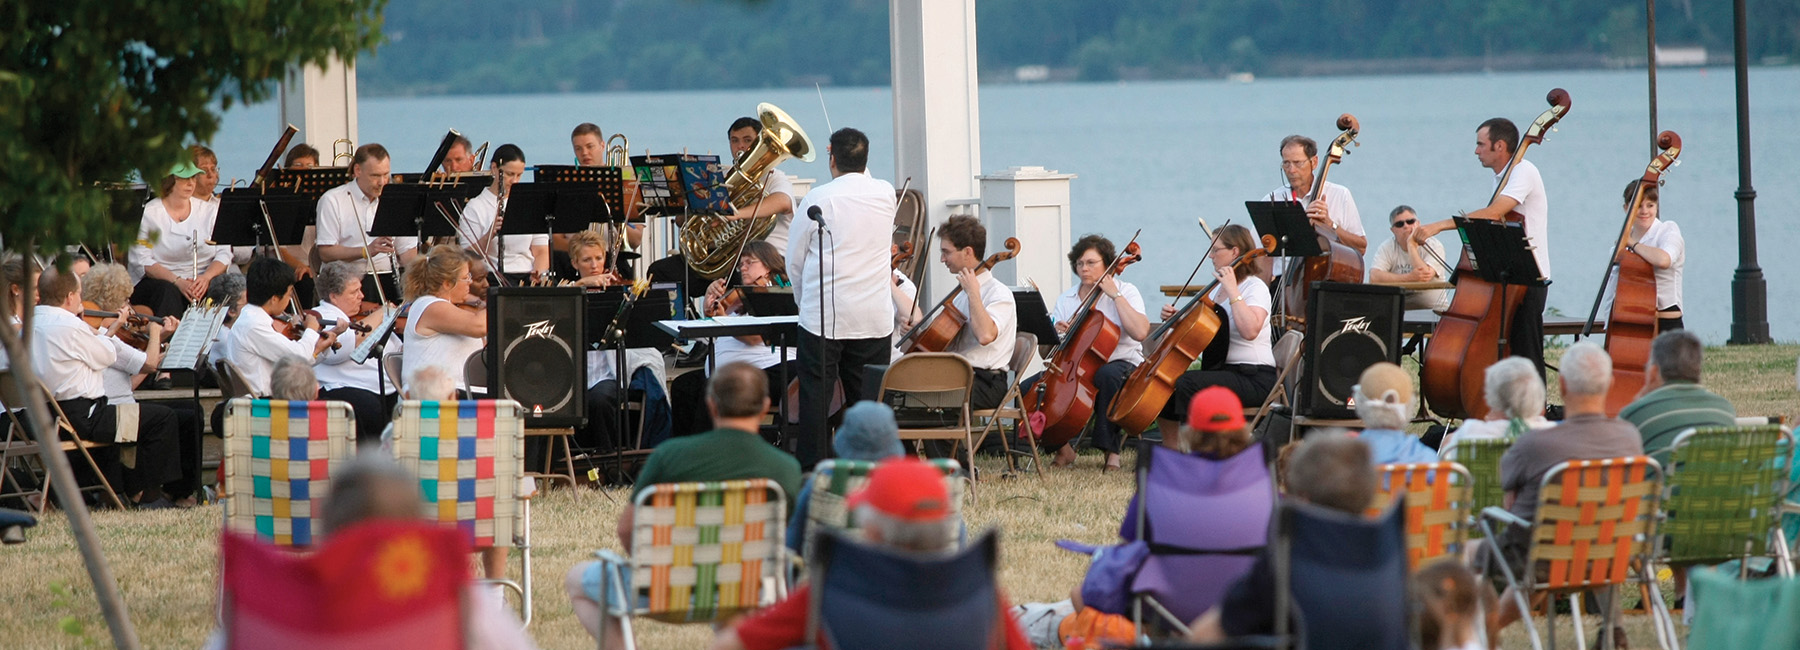 Lakefront Concert Series in Geneva, New York